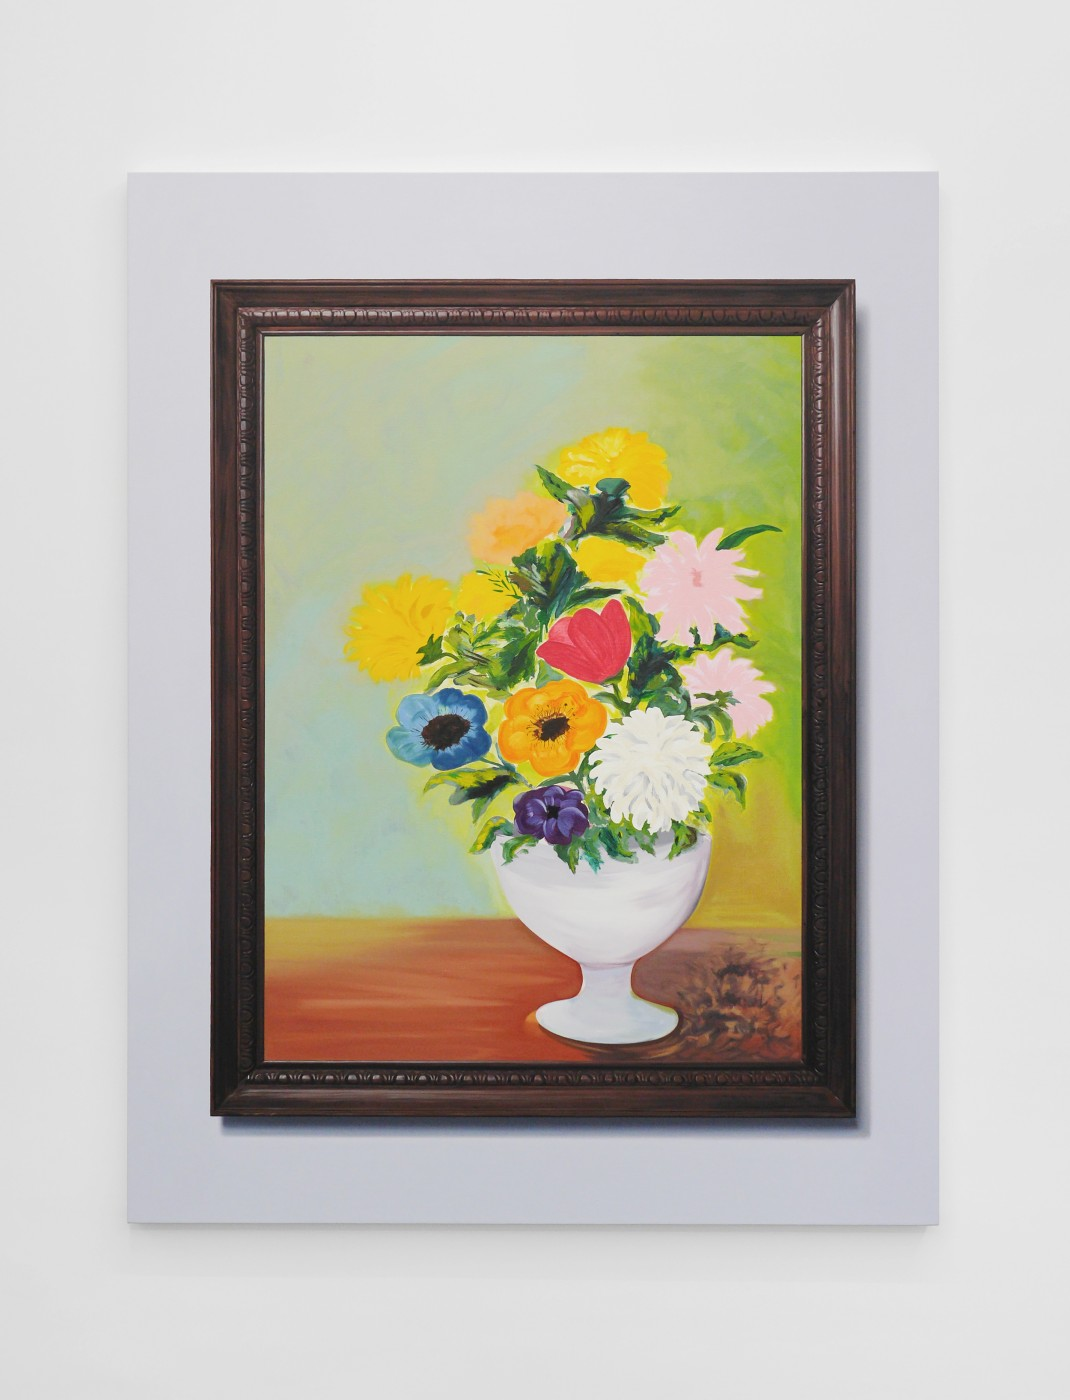 Significant Others (I Am Small, It's The Pictures That Got Big) Mathew Cerletty,  Ashley's Flowers , 2012  